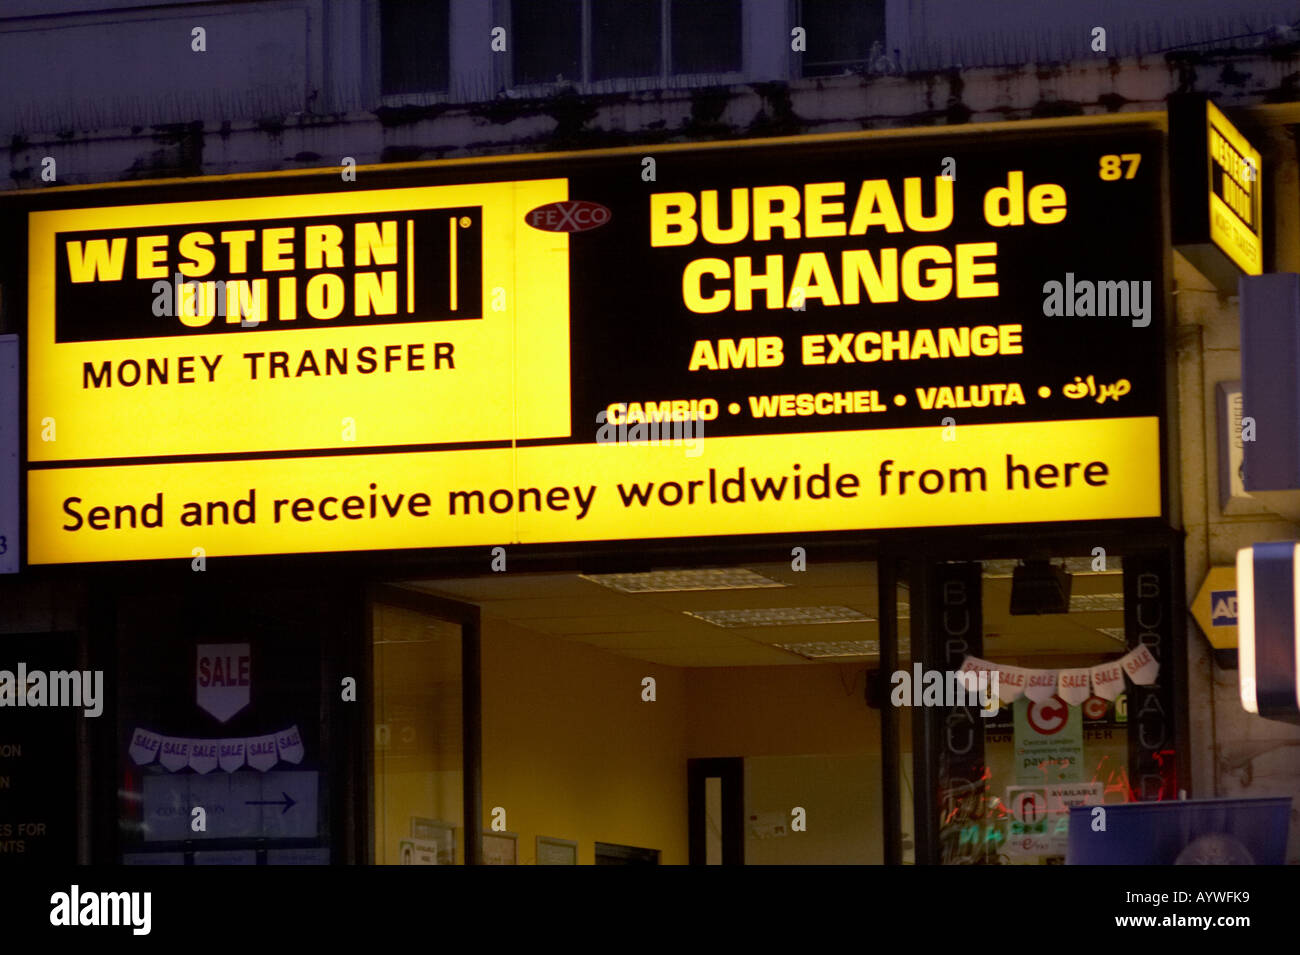 Western Union money transfer bureau de change in London UK Stock